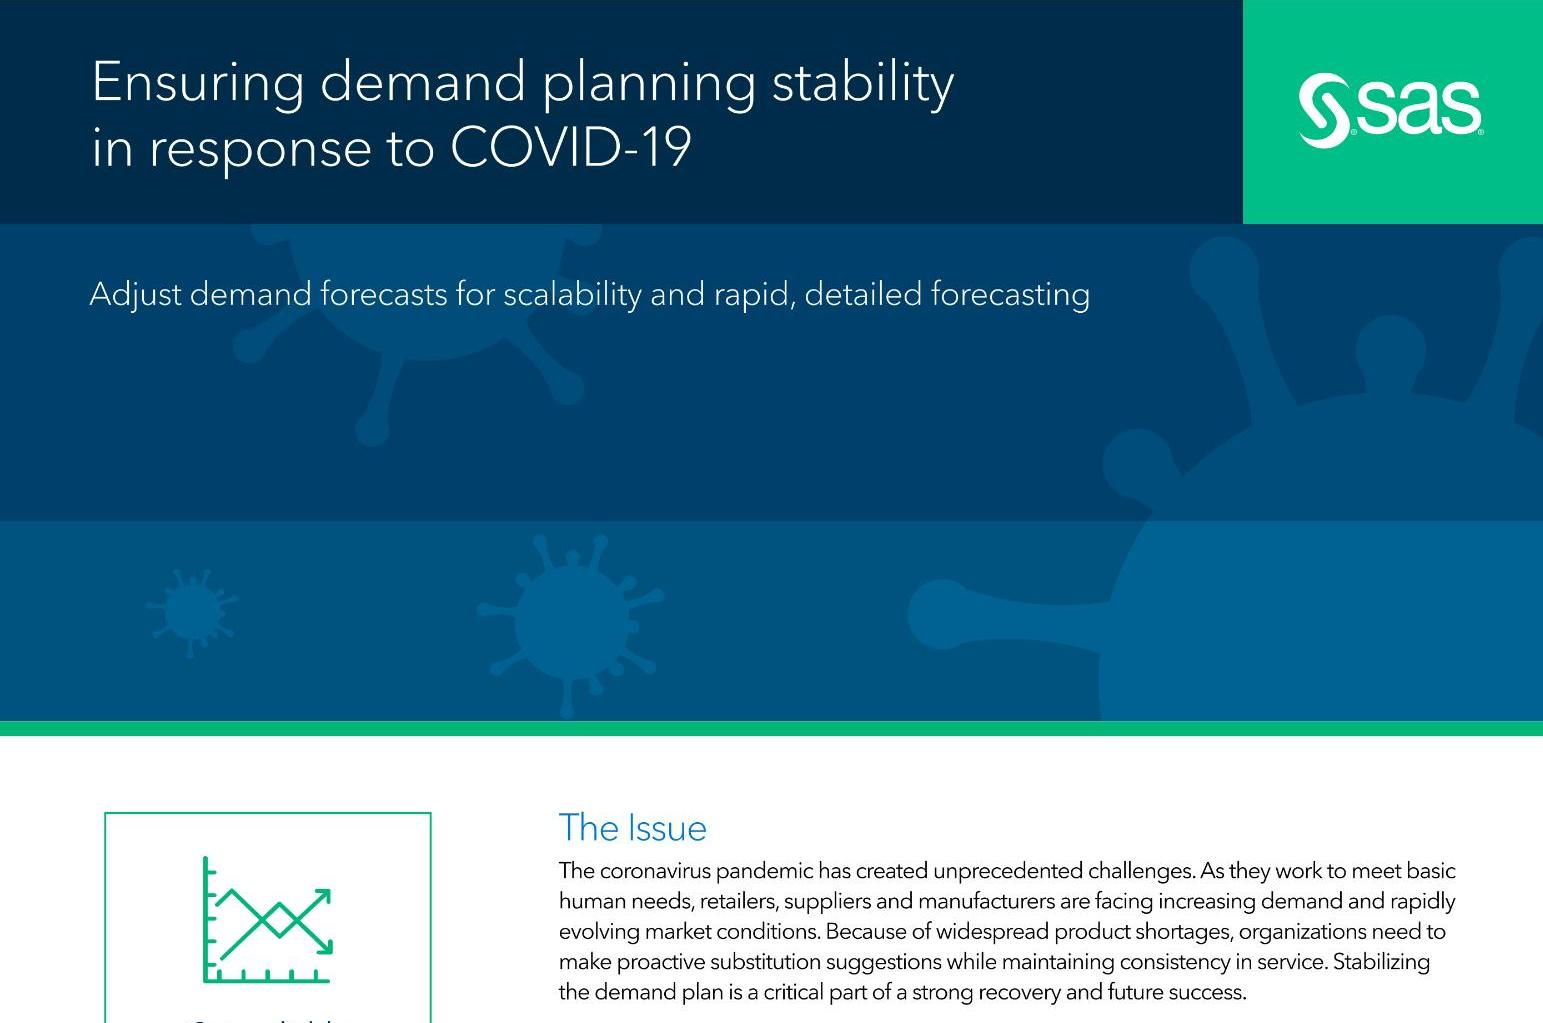 Ensuring demand planning stability in response to COVID-19